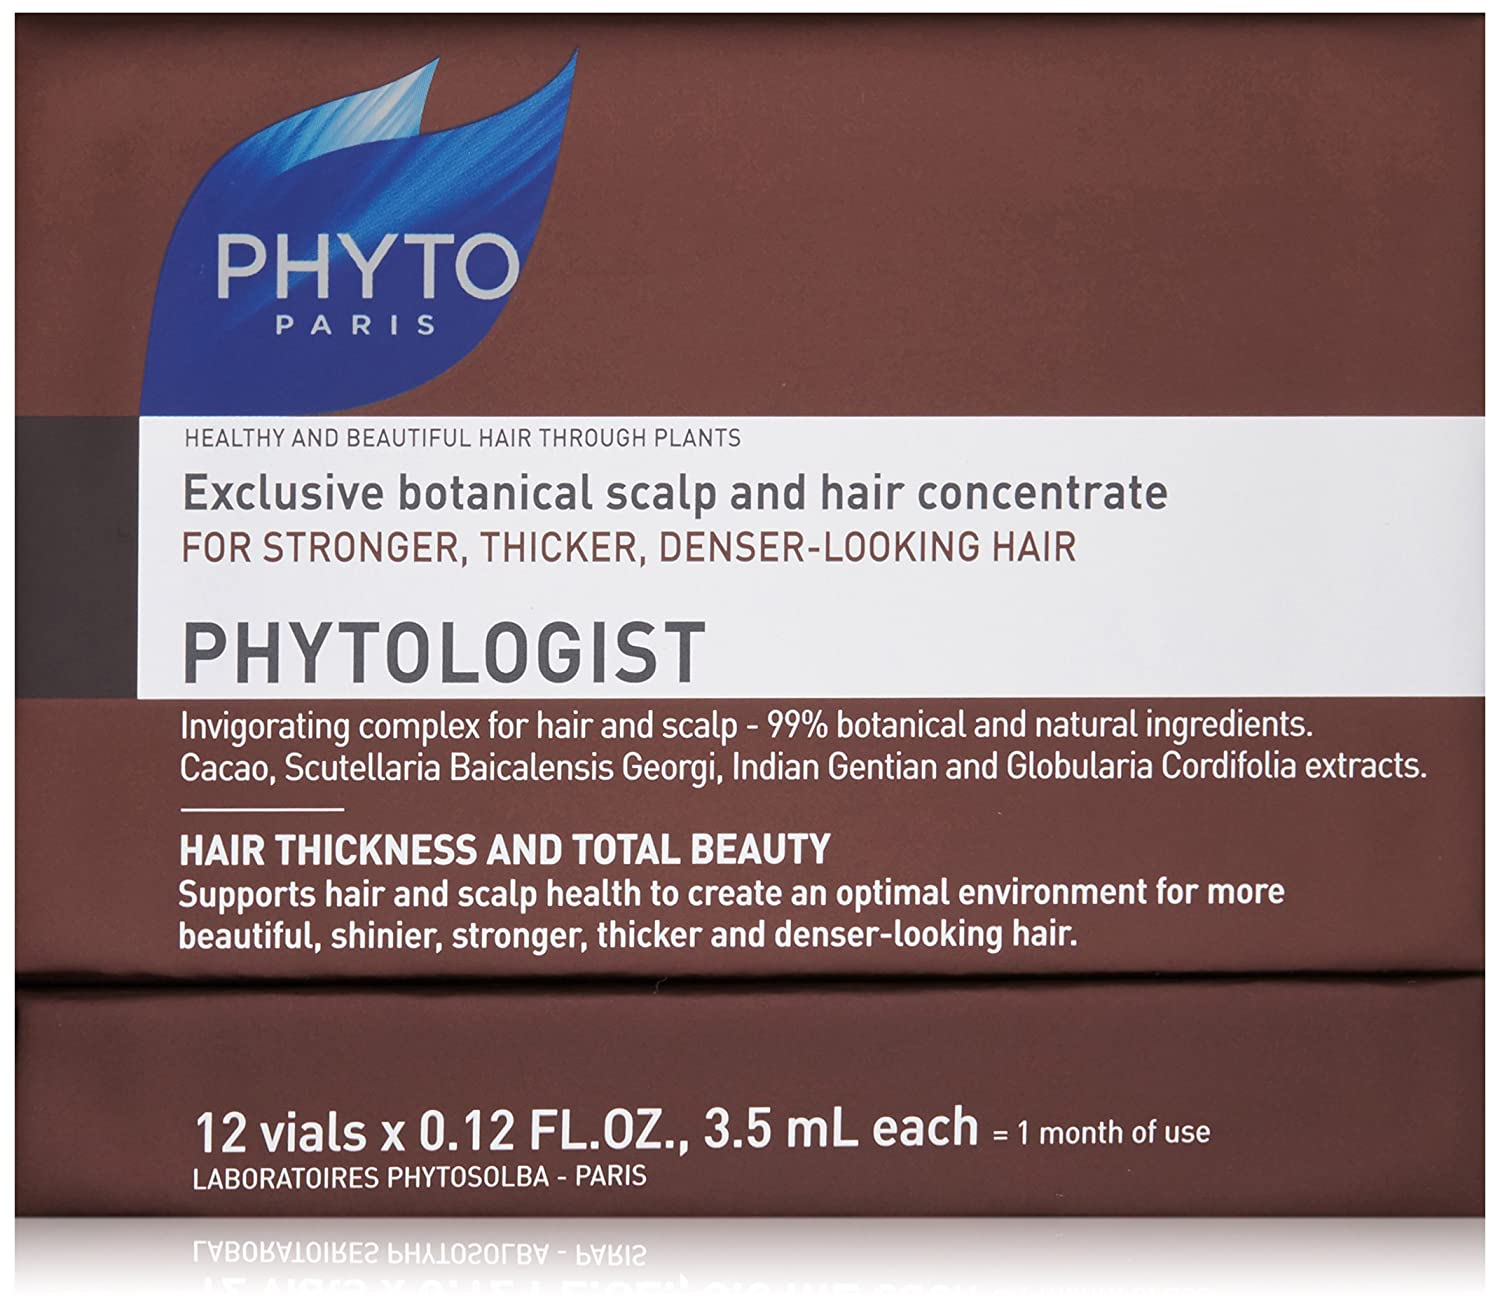 Phyto Phytologist Exclusive Scalp Hair Concentrate Electrical Wall Outlet Wiring Newhairstylesformen2014com Luxury Beauty